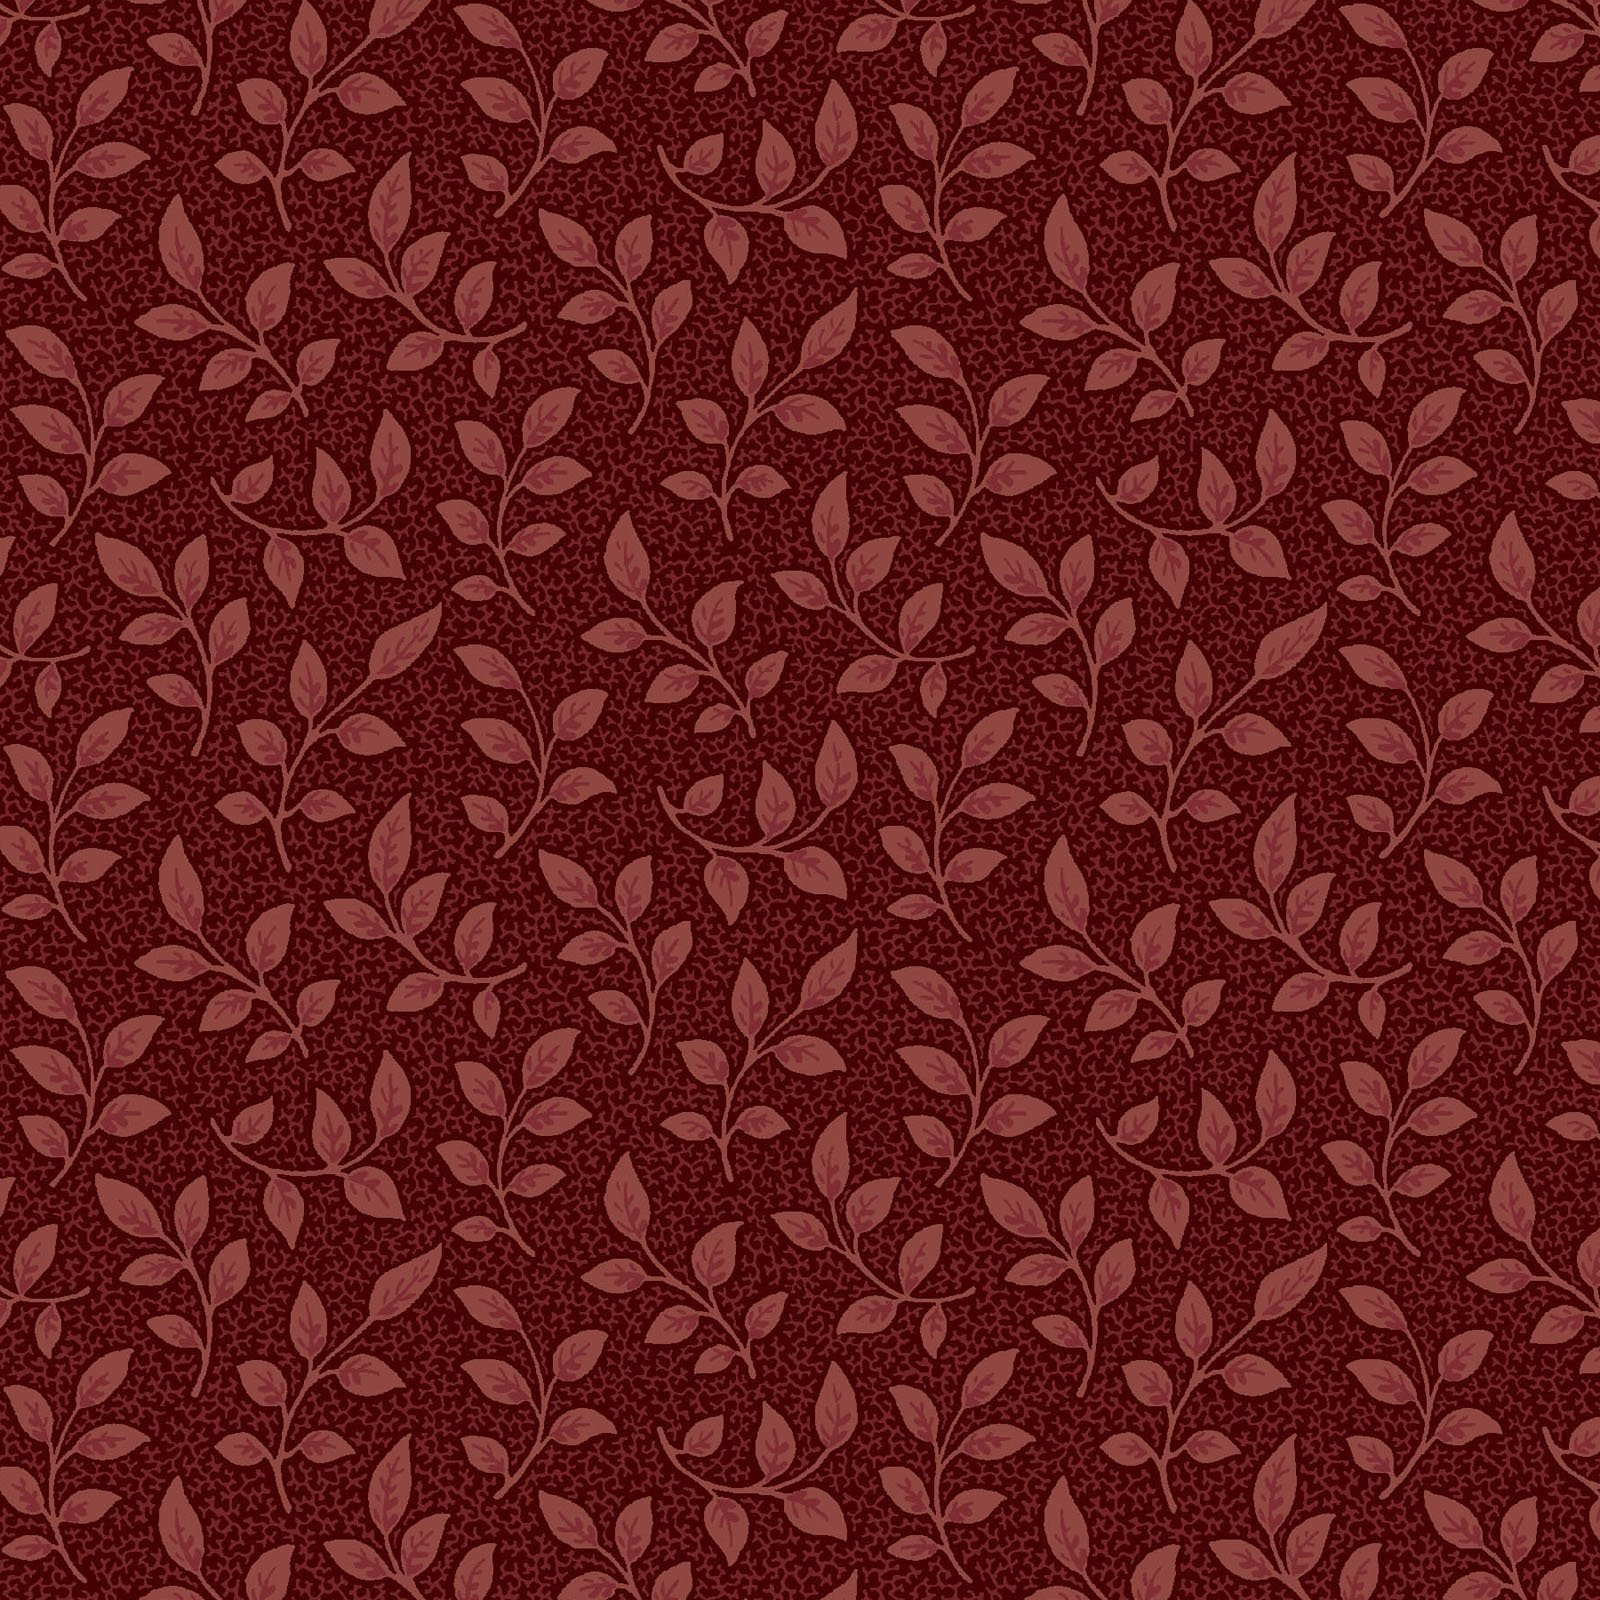 ANAS-4246 DR - ANASTASIA - RED BY P&B BOUTIQUE LEAVES DK RED